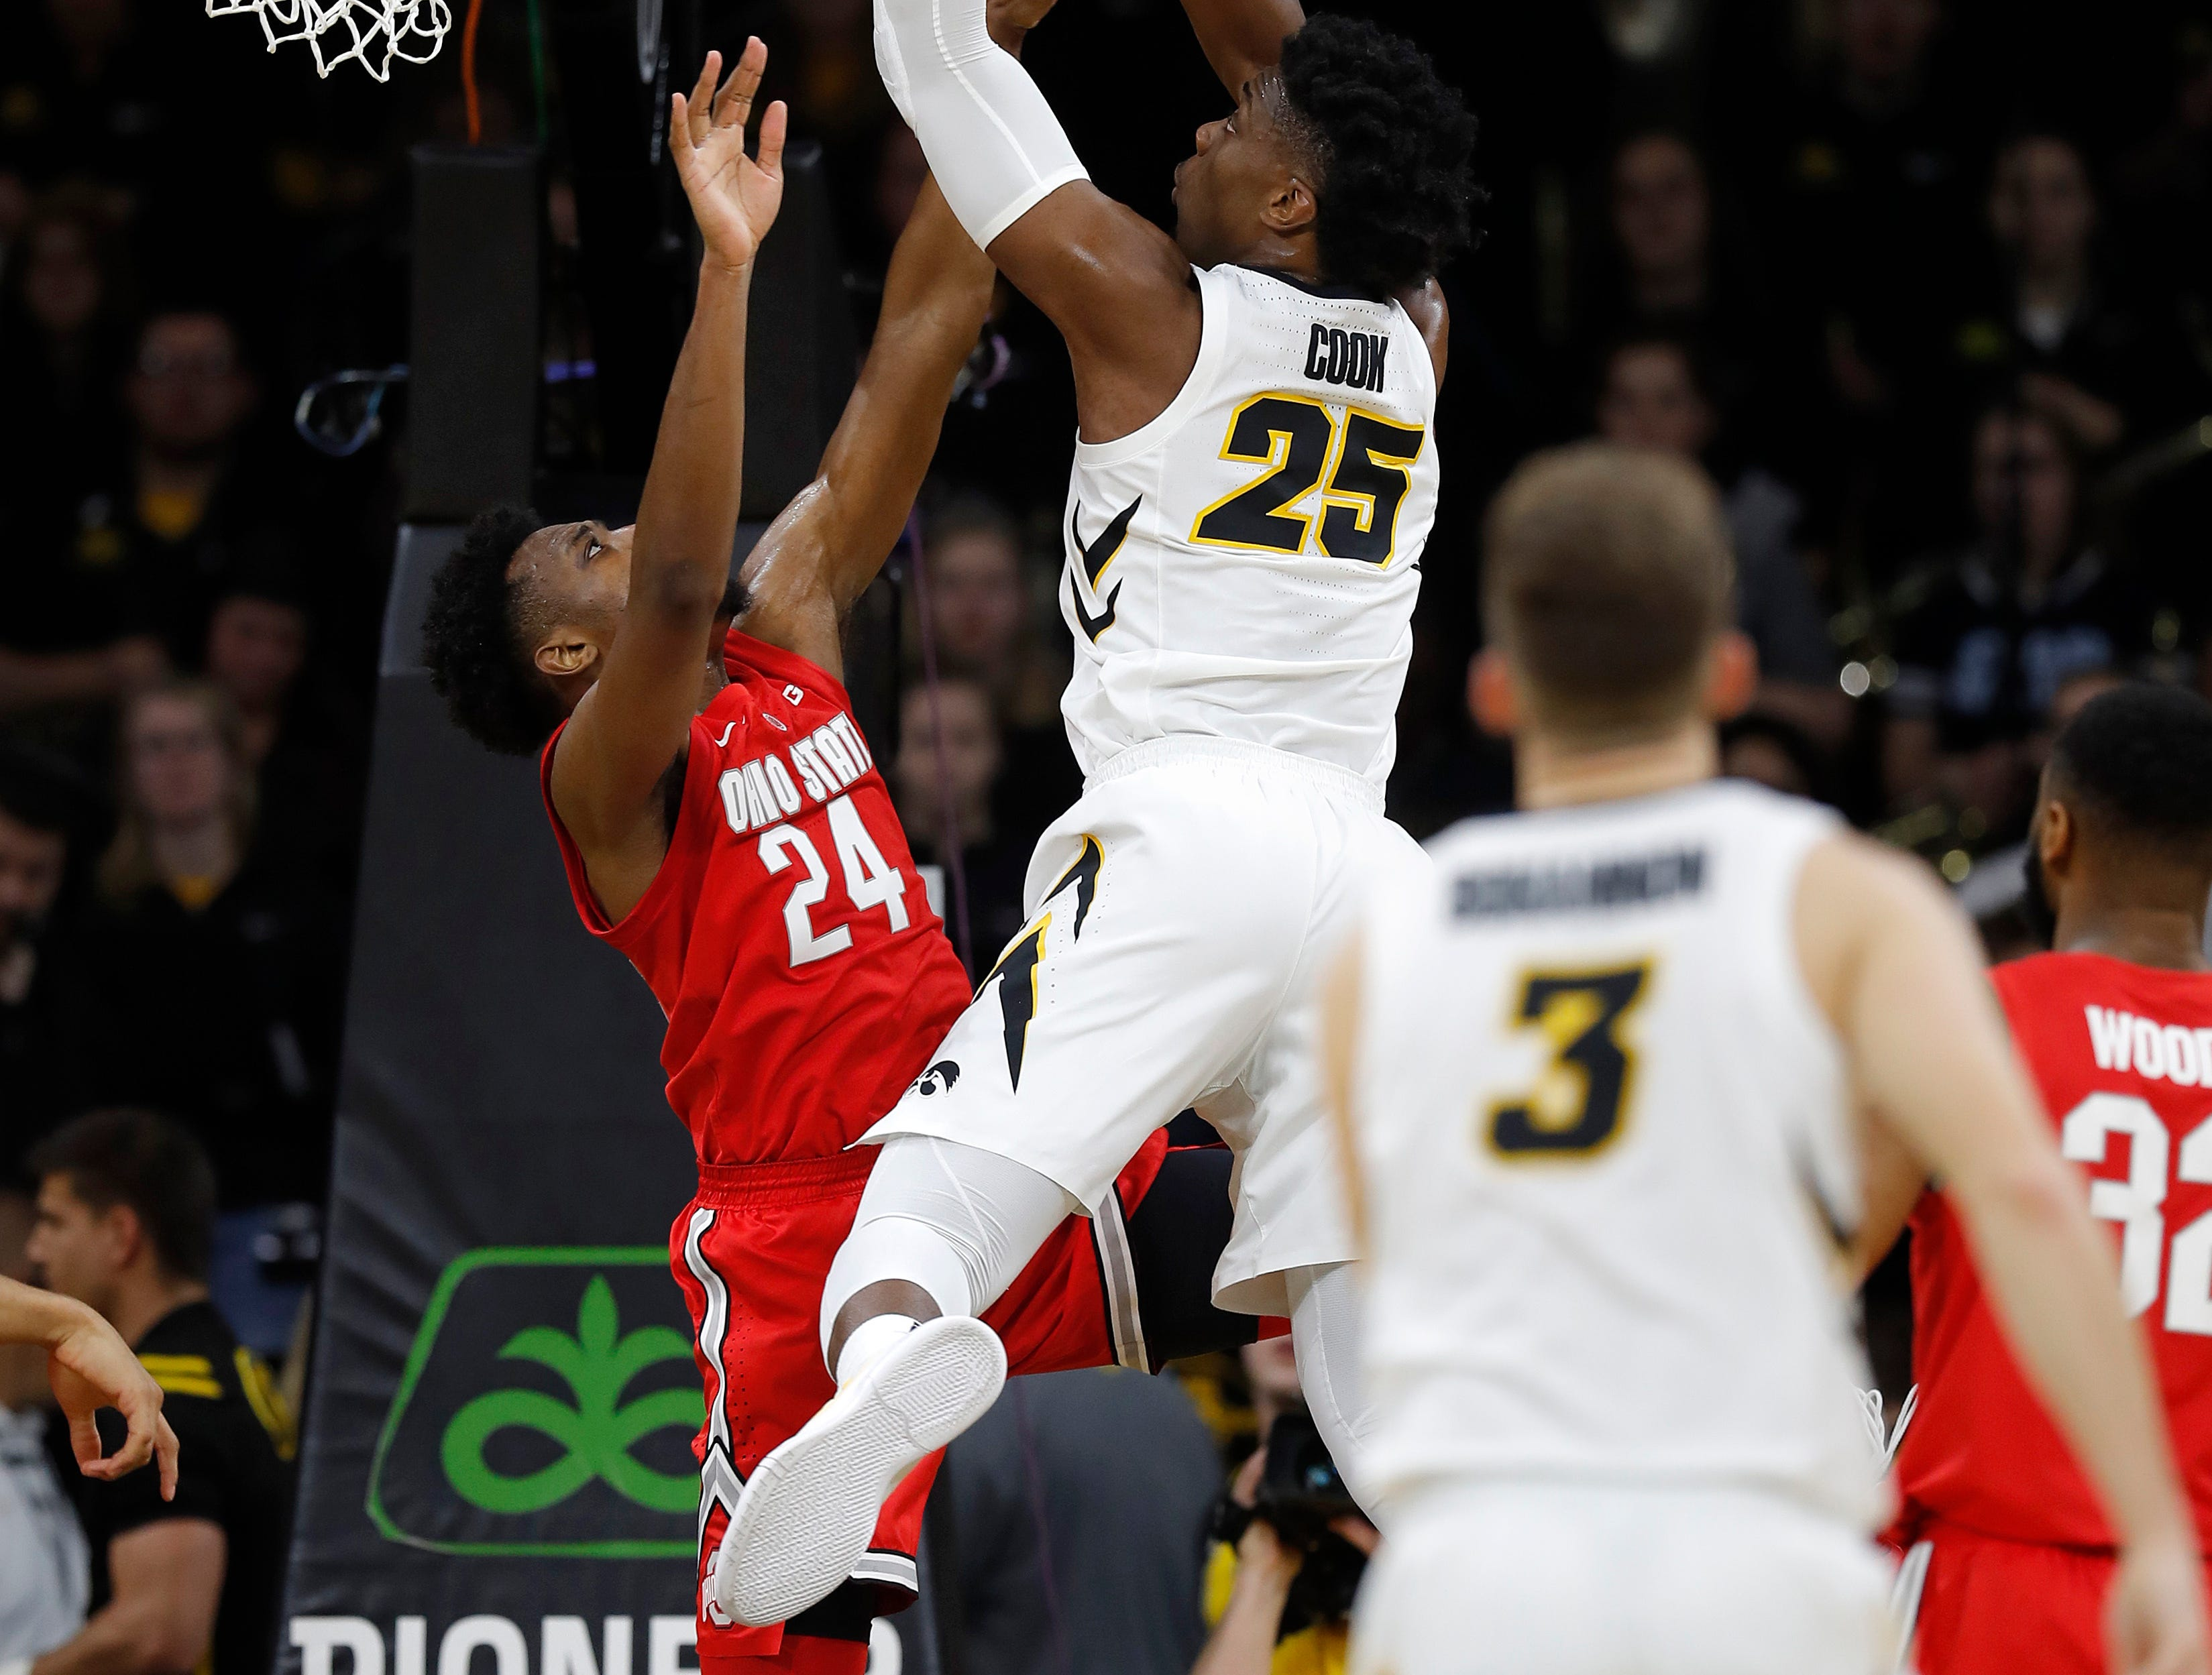 Iowa forward Tyler Cook, center, finds a basket as he is fouled by Ohio State forward Andre Wesson, left, during the first half of an NCAA college basketball game, Saturday, Jan. 12, 2019, in Iowa City, Iowa.